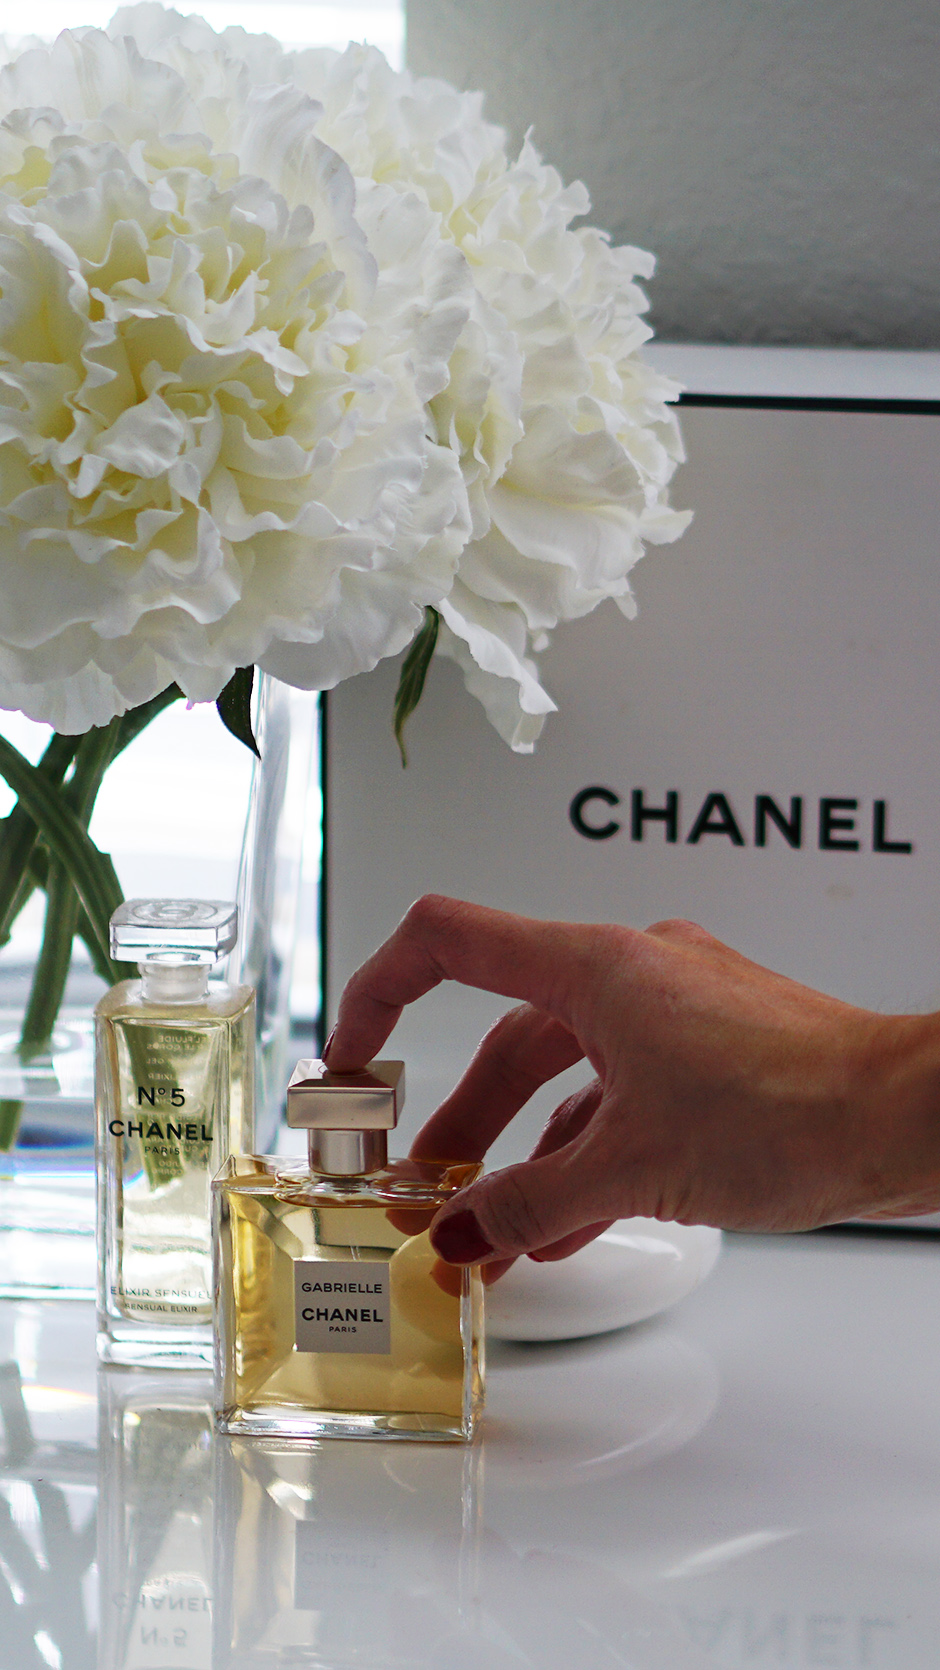 CHANEL Gabrielle Chanel, Eau De Parfum Spray Luxury Beauty Products #ad #beautyproducts #truered #chanelbeauty #chanelpartner #redlipstick #mattelipstick #fashioninspiration #valentinesday #valentinesbeauty #beautyinspo